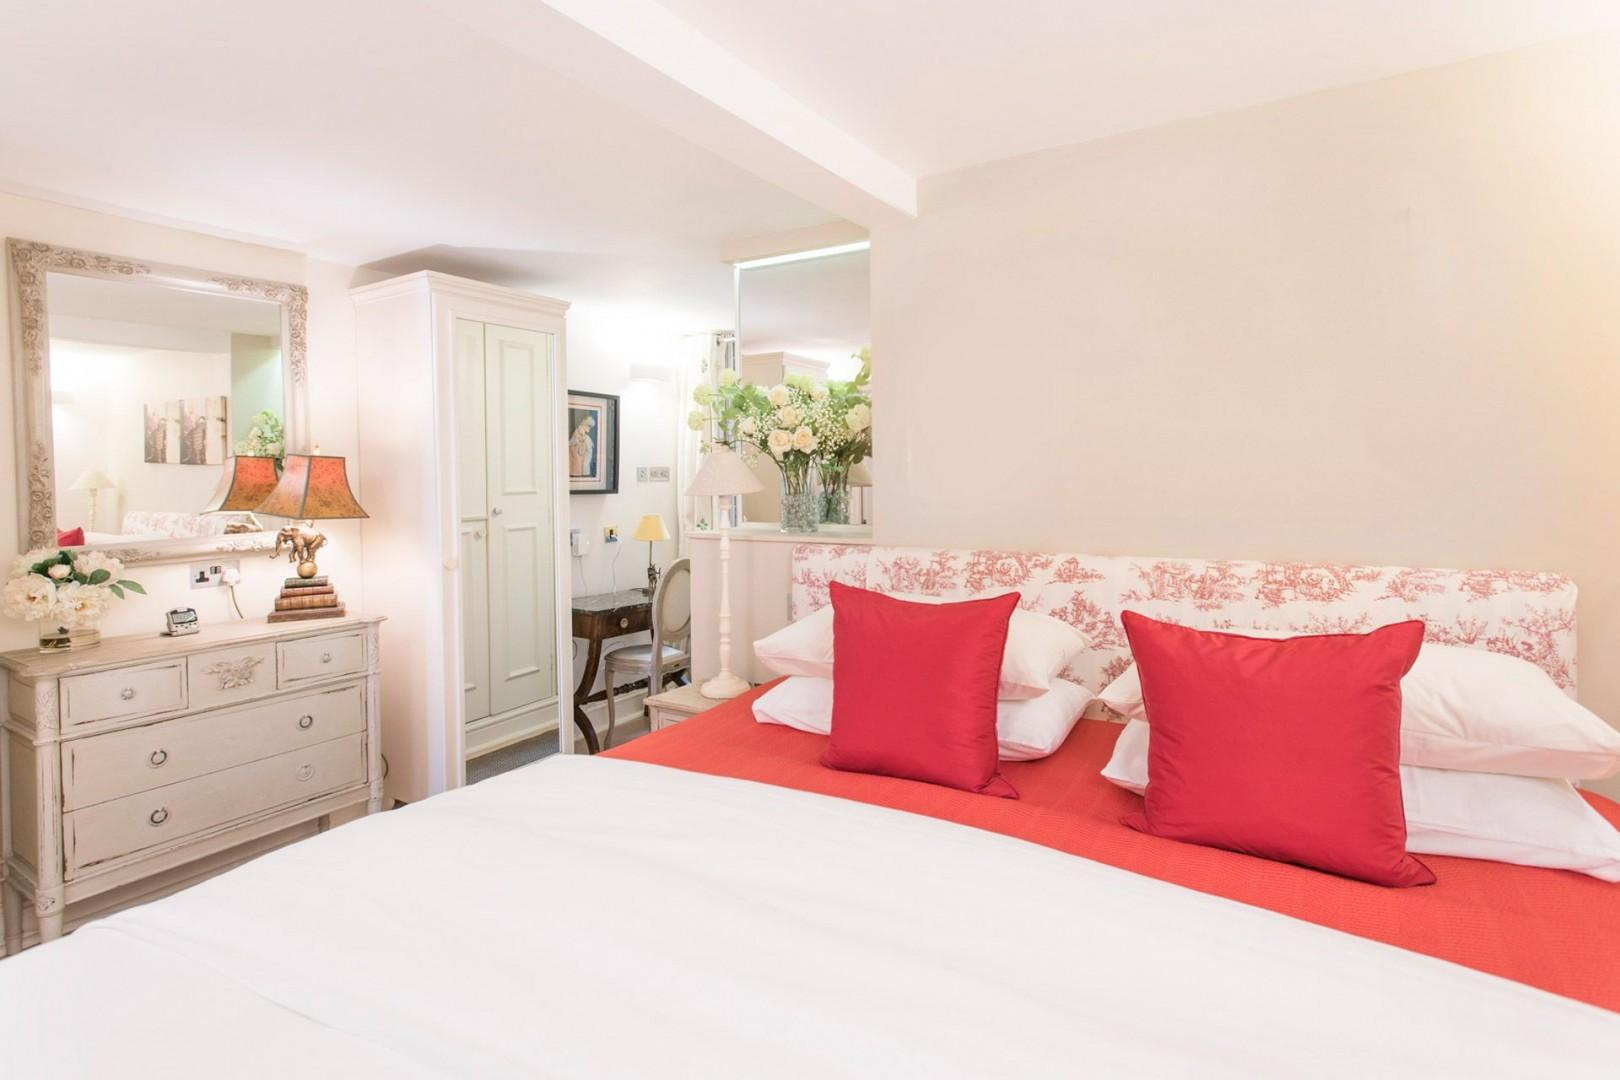 Pretty touches in the bedroom